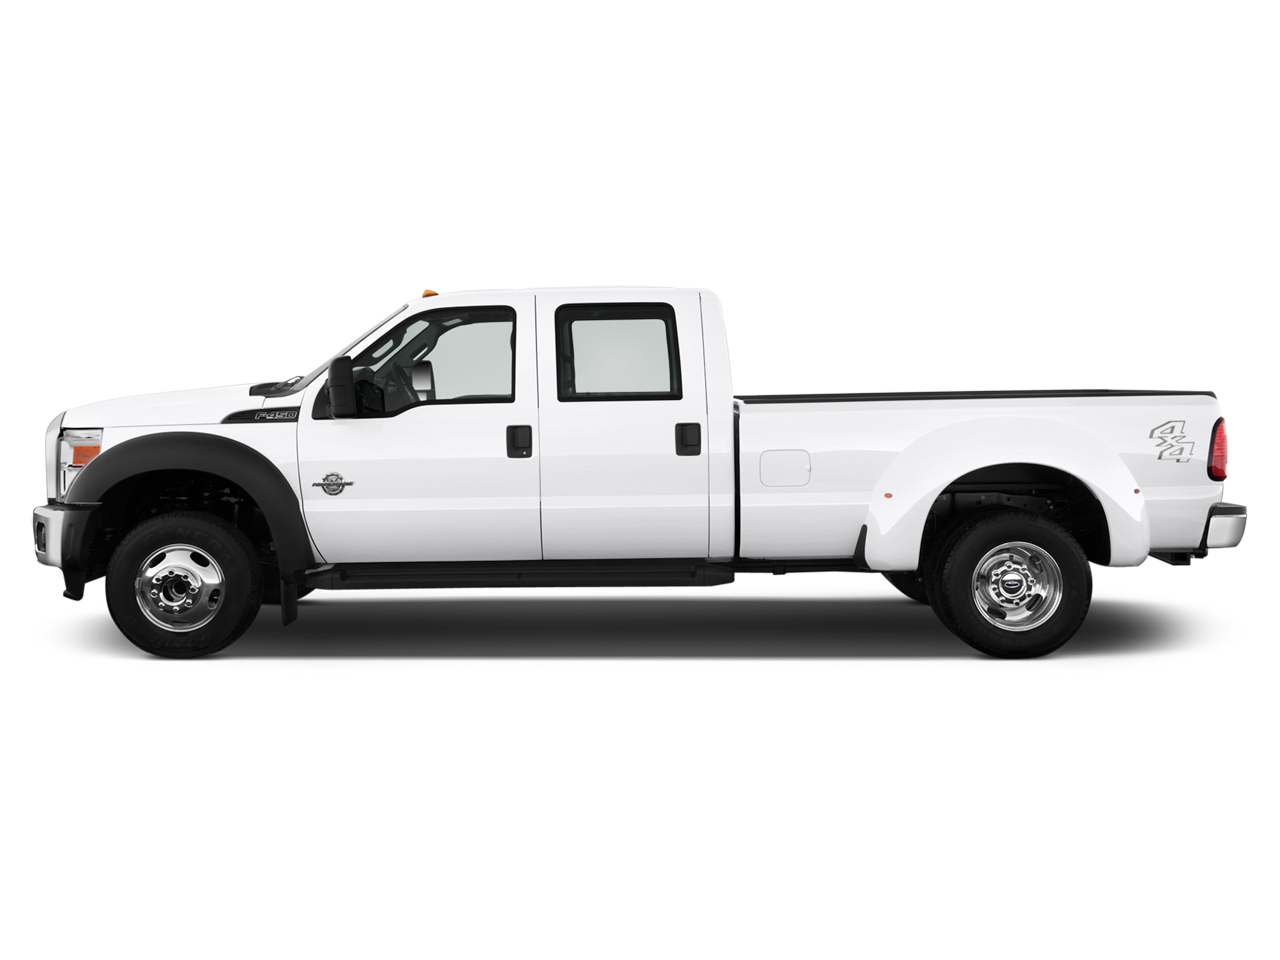 2000 Ford F250 Super Cars for sale likewise  besides Cars Priced Under  50k For Sale West Palm Beach FL   Wellington furthermore McElveen Lifted Trucks   Auto Dealership in Charleston as well 2015 Chevrolet Silverado 1500 LT Mesa AZ 25781621 likewise Ford F 450 Super Duty or Escort for Sale near Borger  TX   Whiteface furthermore Used Ford for Sale   Special Offers   Edmunds as well Used Vehicles for Sale in Colorado Springs  CO   Phil Long Kia besides Expedition or F 150 for Sale in Hereford  TX   Whiteface Ford as well Used Ford F 150 for Sale in Brick  NJ   Edmunds moreover Used Pickup Truck or Pickup Truck 4X4 Vehicles for Sale near. on used ford f super duty for sale special offers edmunds new silver city nm vin f250 driveline parts diagram